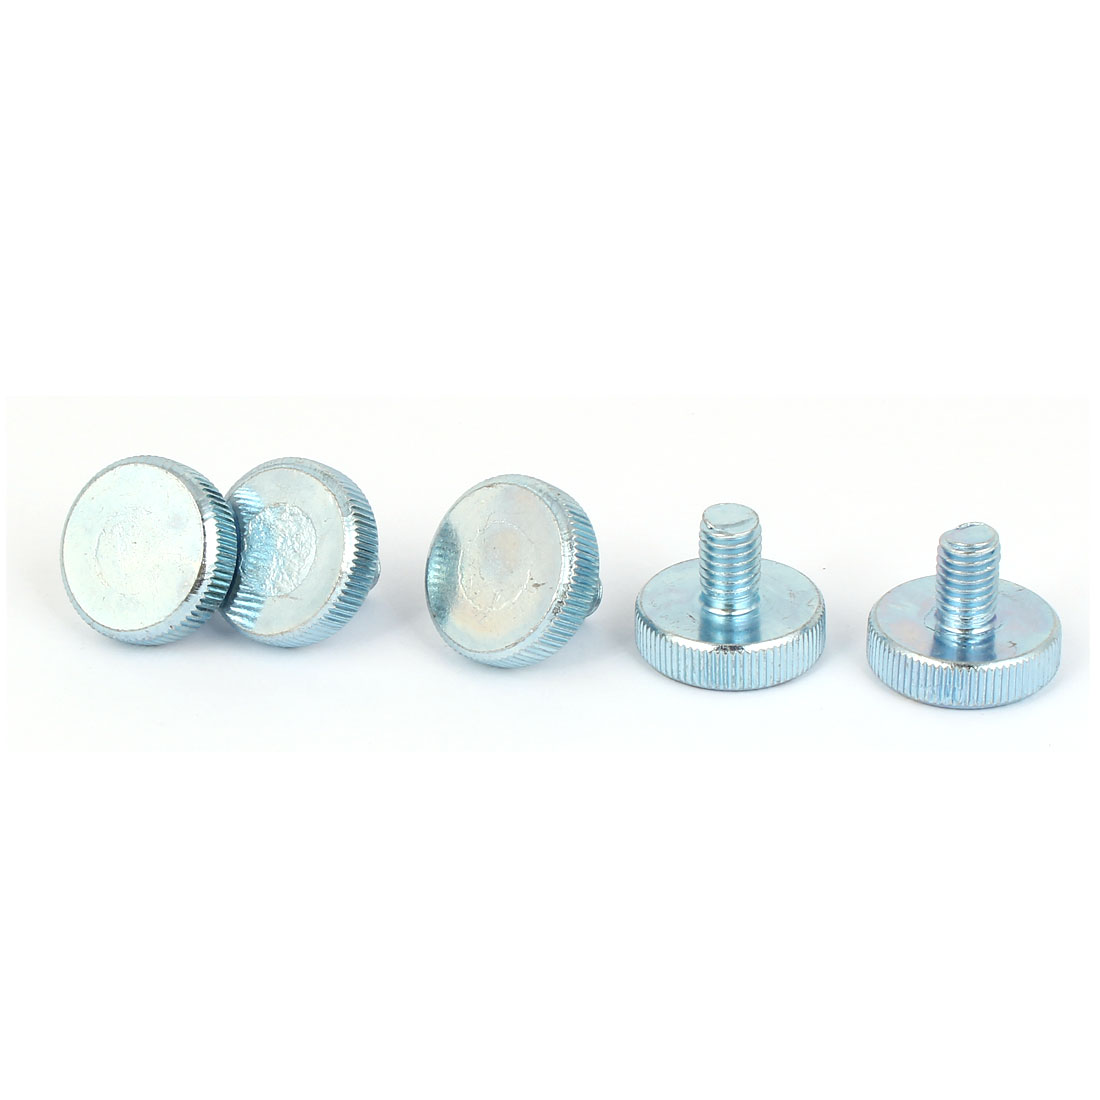 M8x12mm Thread Carbon Steel Knurled Round Head Thumb Screws Silver Blue 5pcs